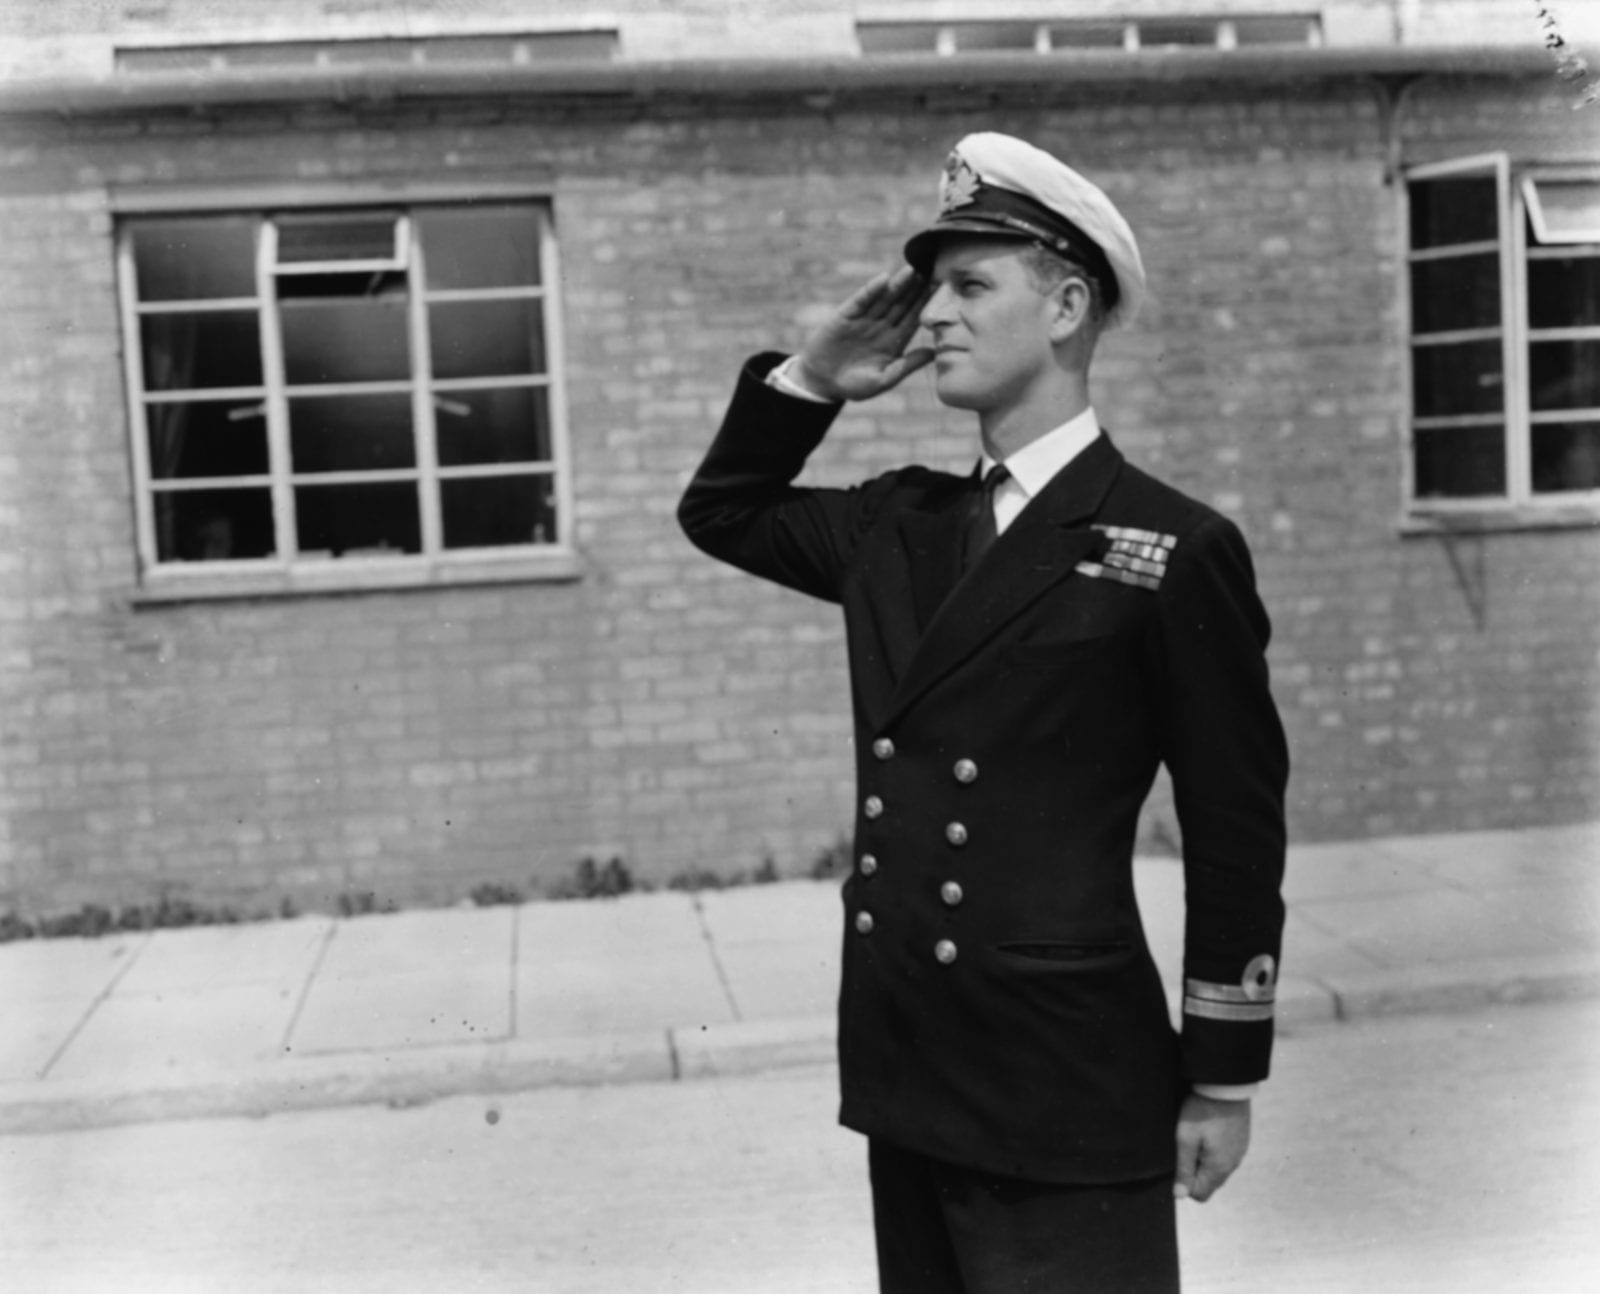 Royal Navy battle cry will sound at Prince Philip's funeral at his personal request